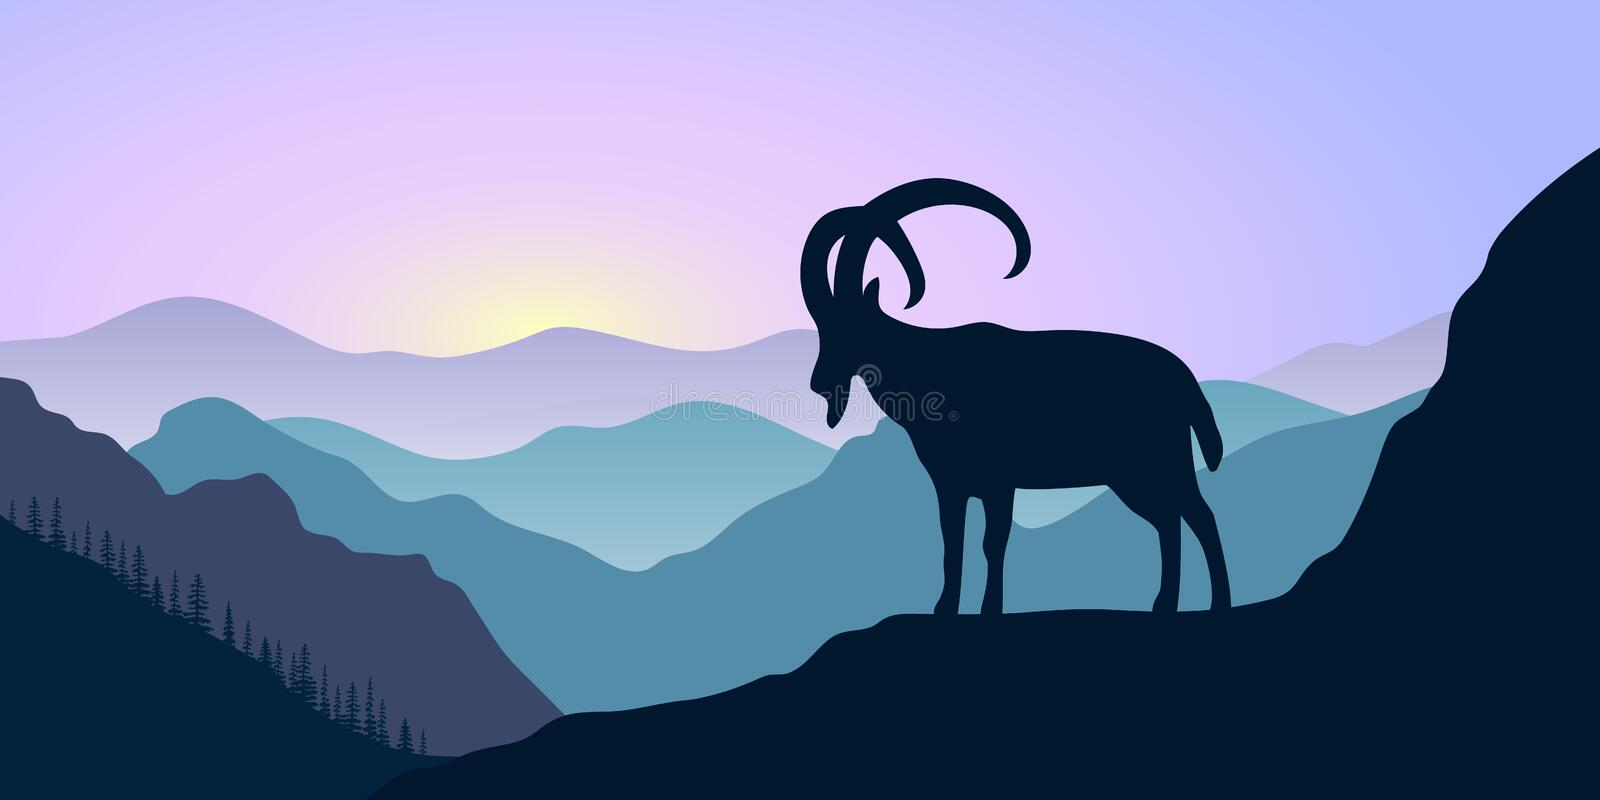 Mountains, alpine ibex and forest at sunrise. landscape with silhouettes royalty free illustration